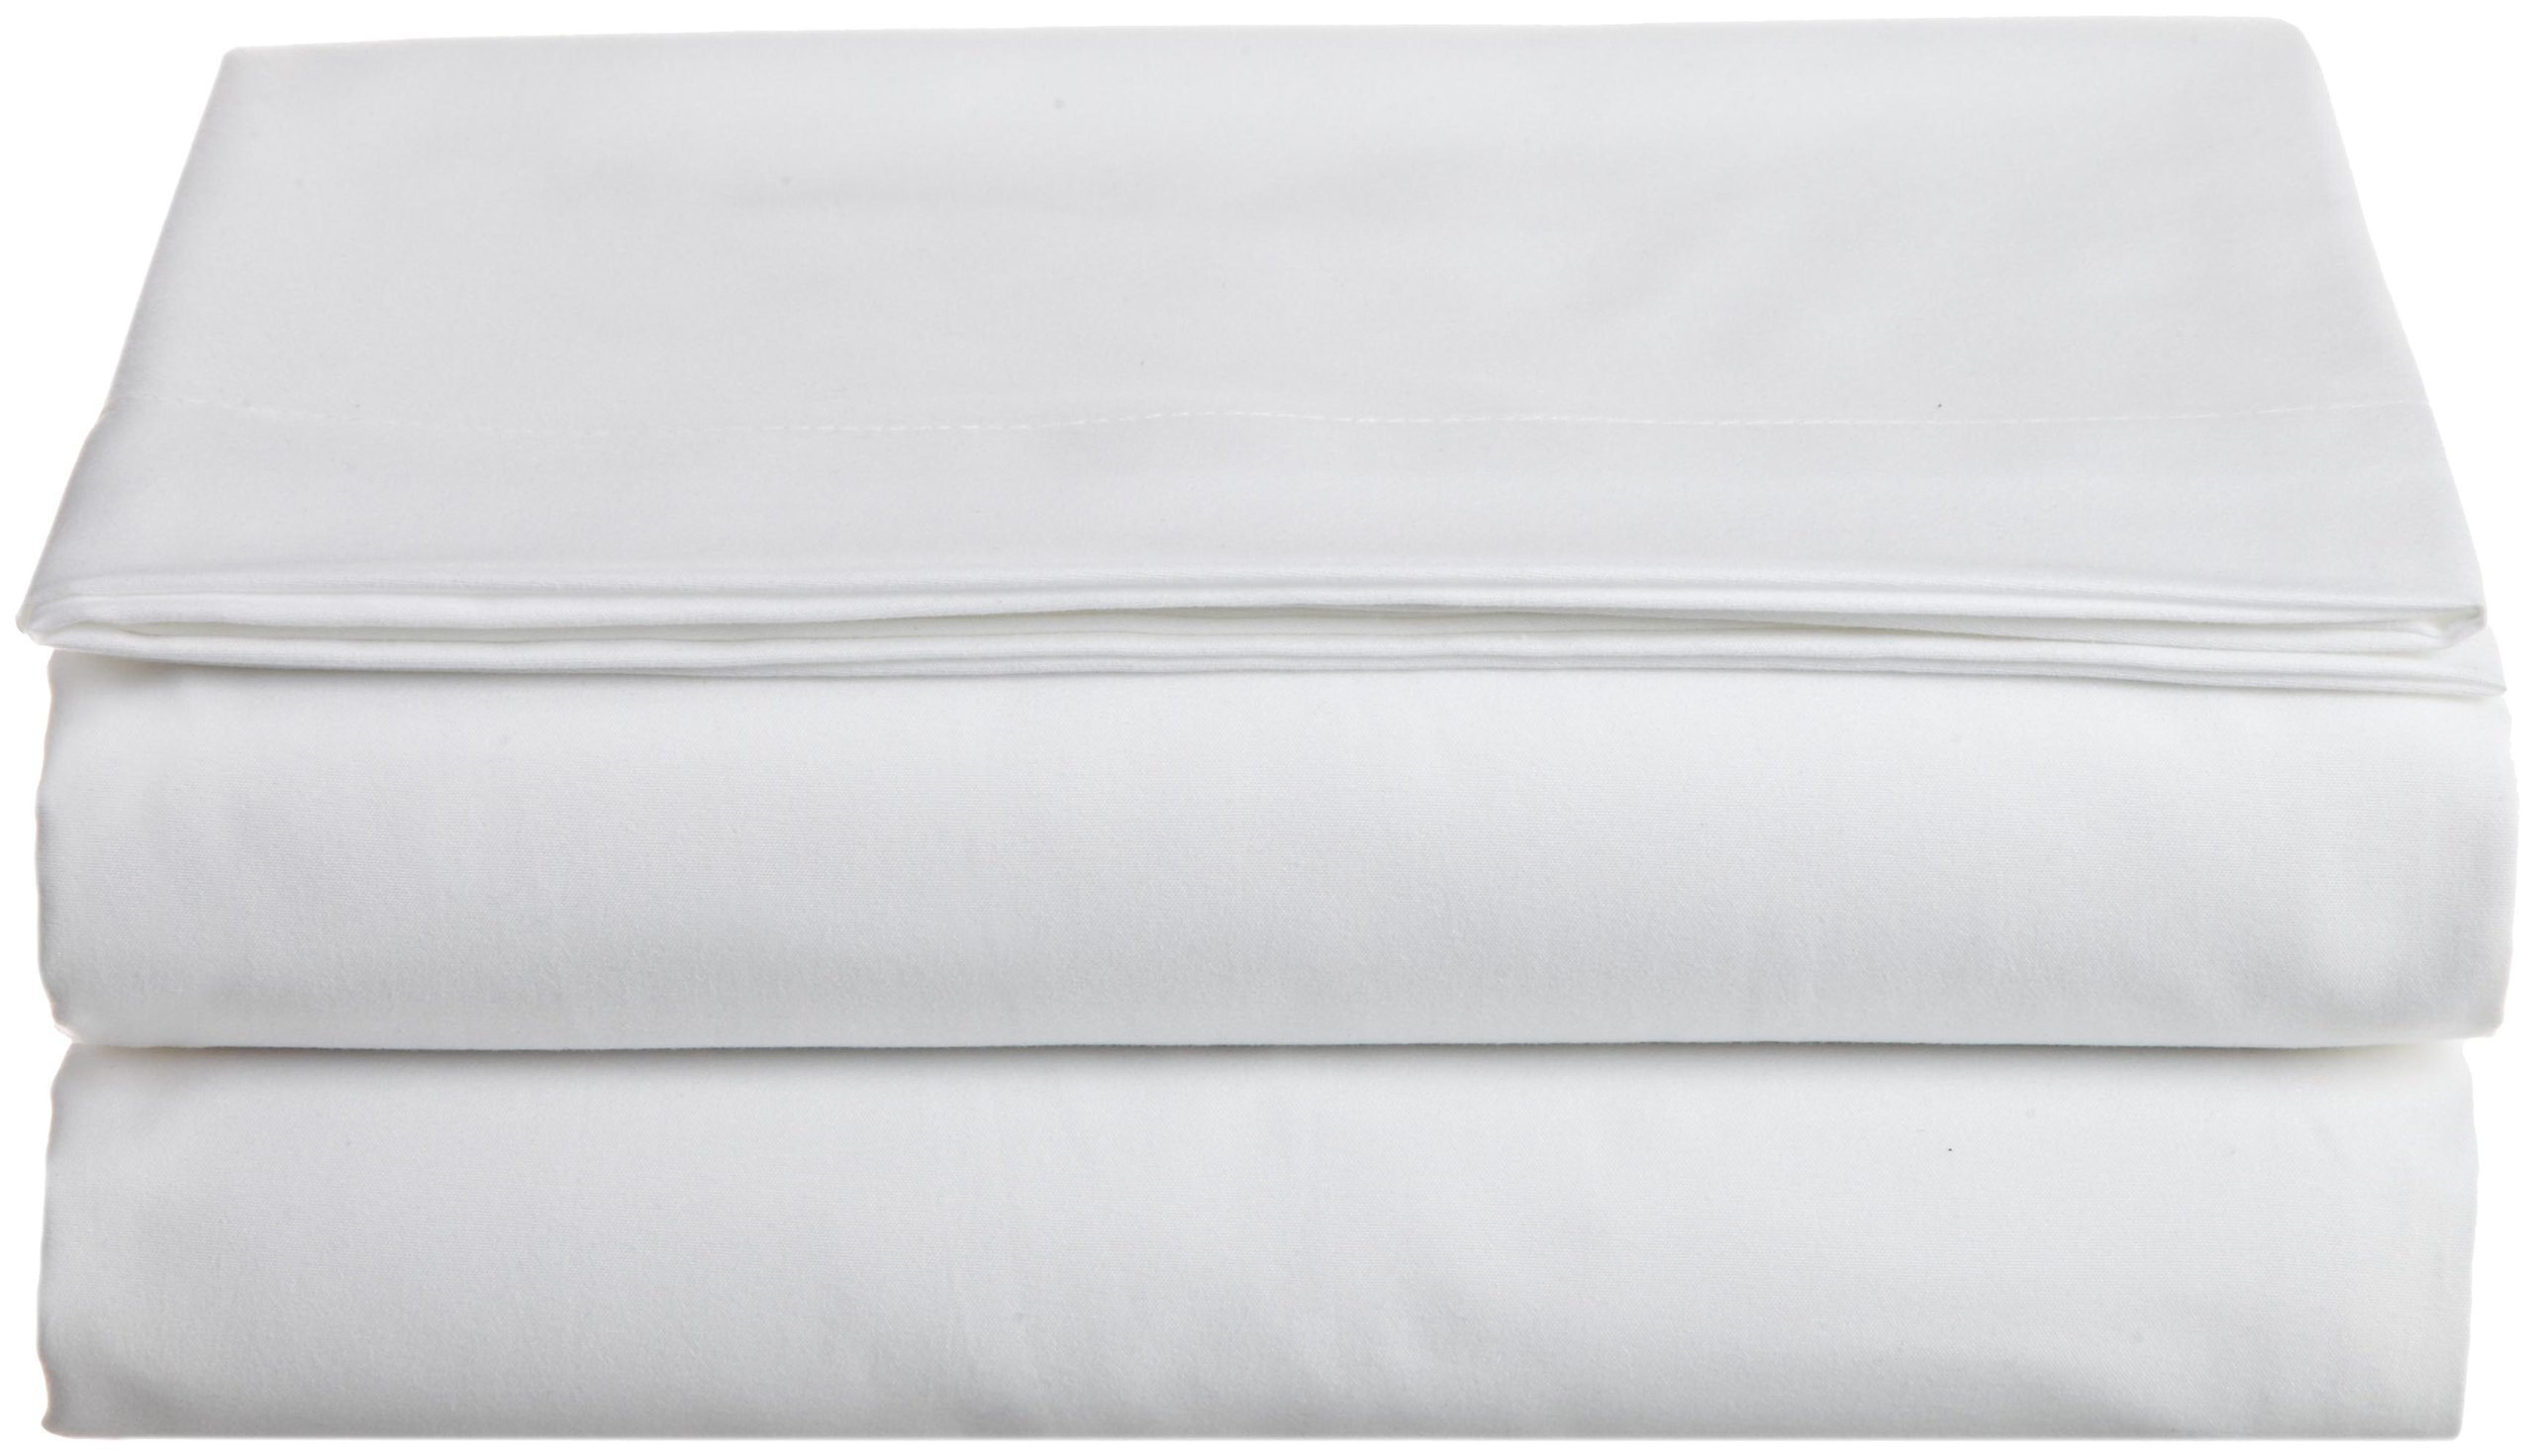 Cathay Home Hospitality Luxury Soft Flat Sheet of 100-Percent Microfiber Construction, King Size, White Color